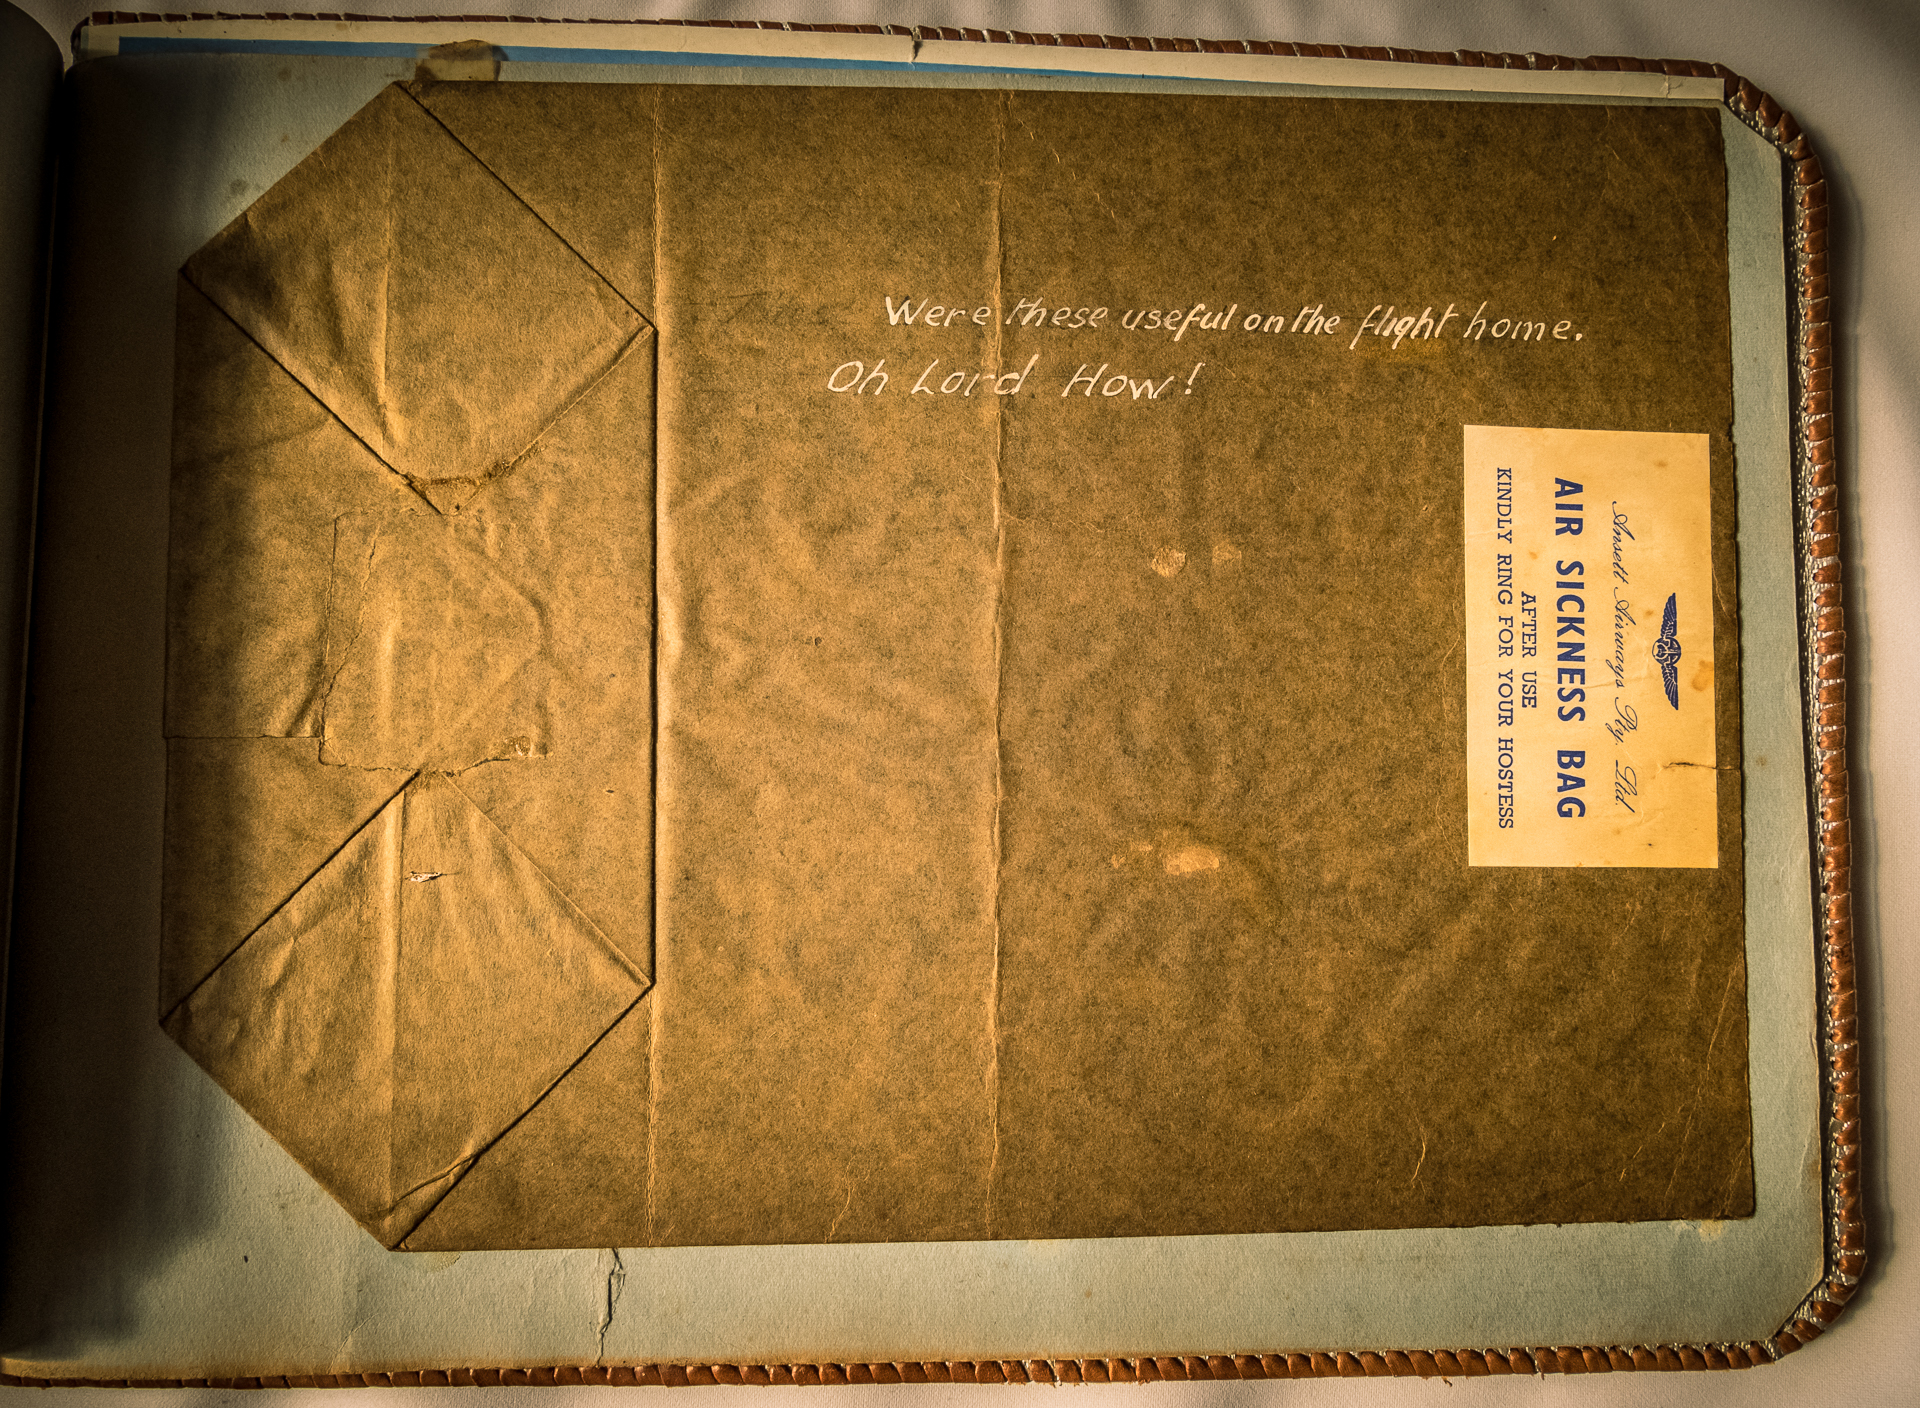 an old air sick bag